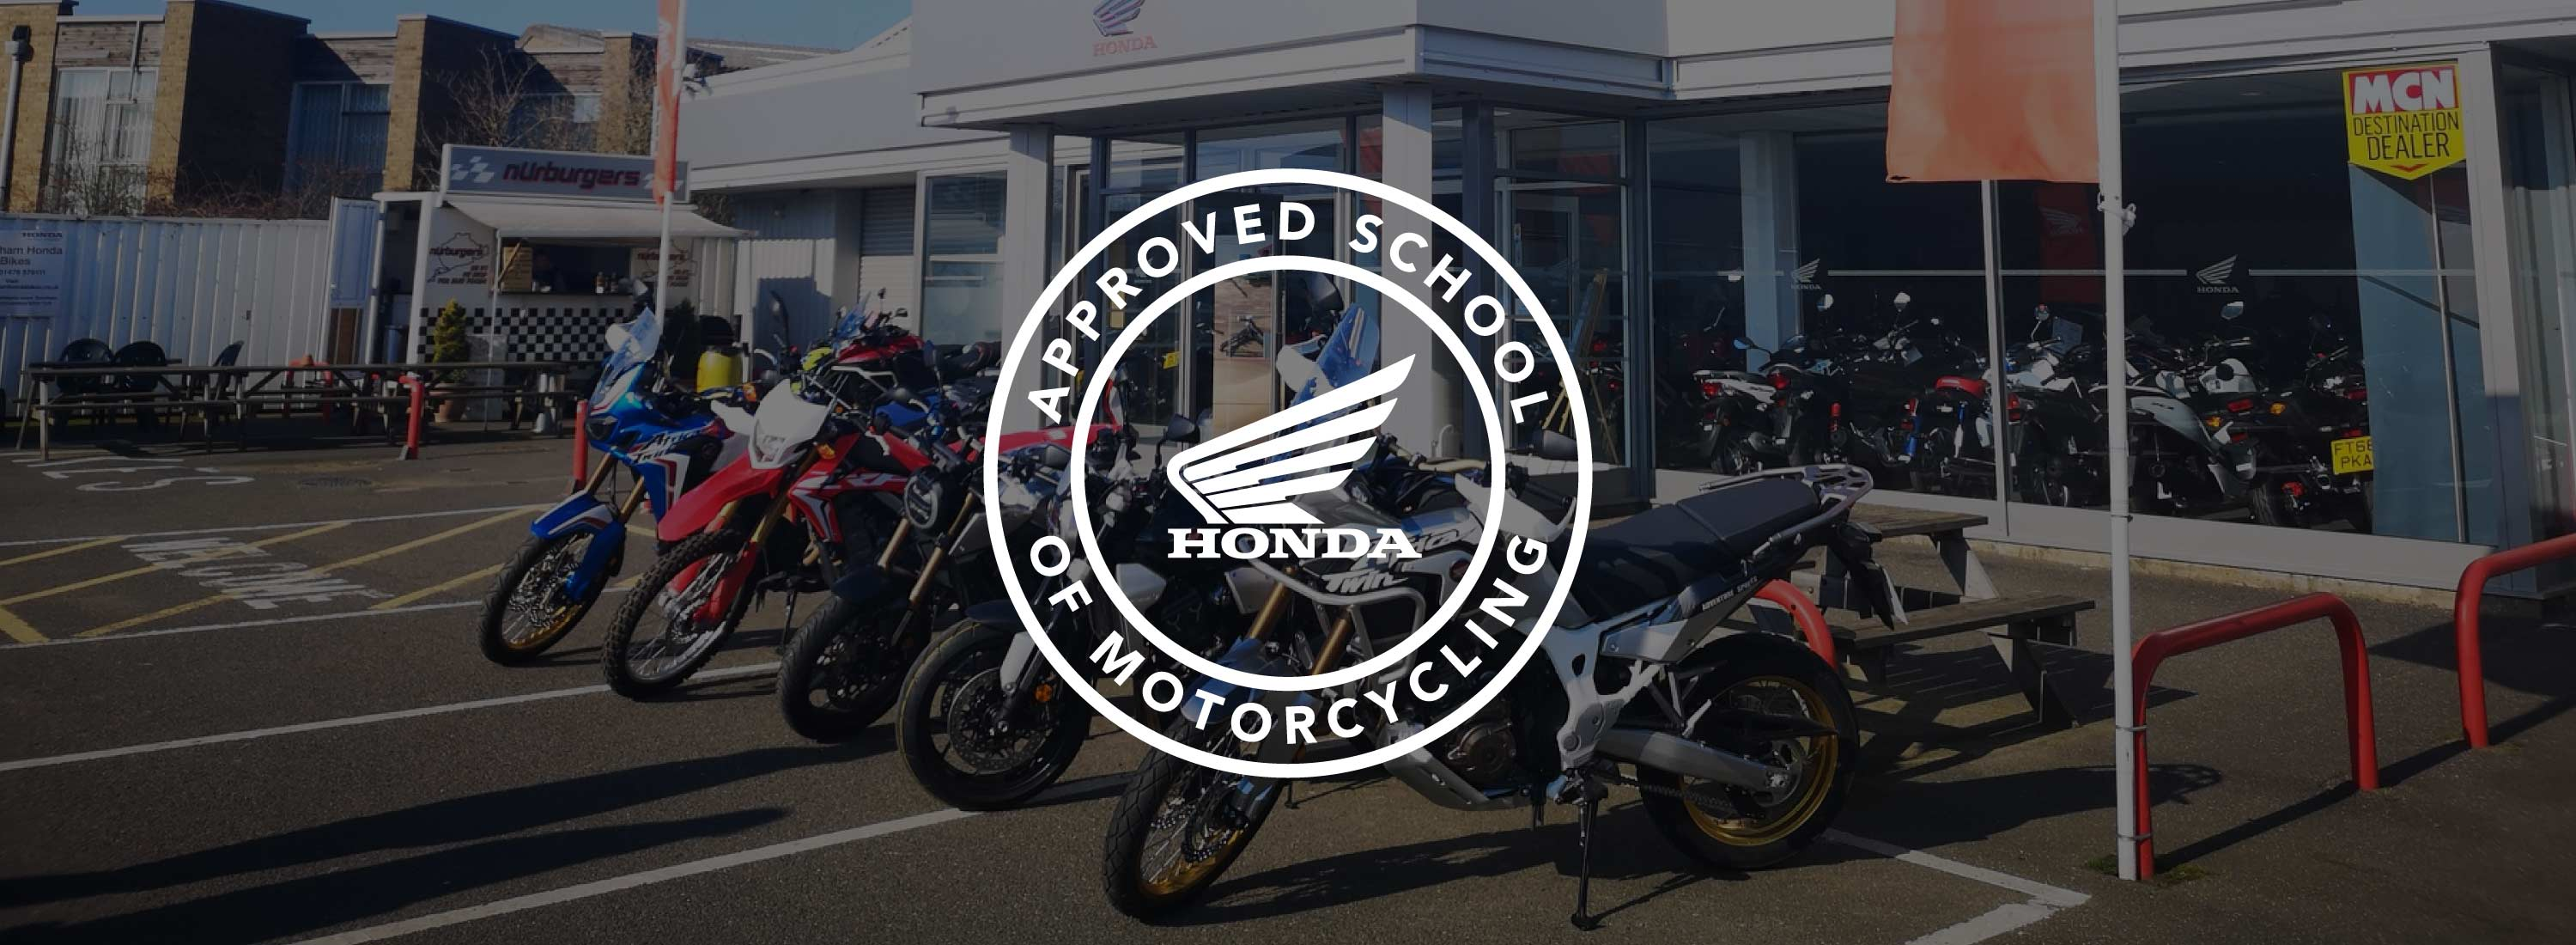 Honda School of Motorcycling